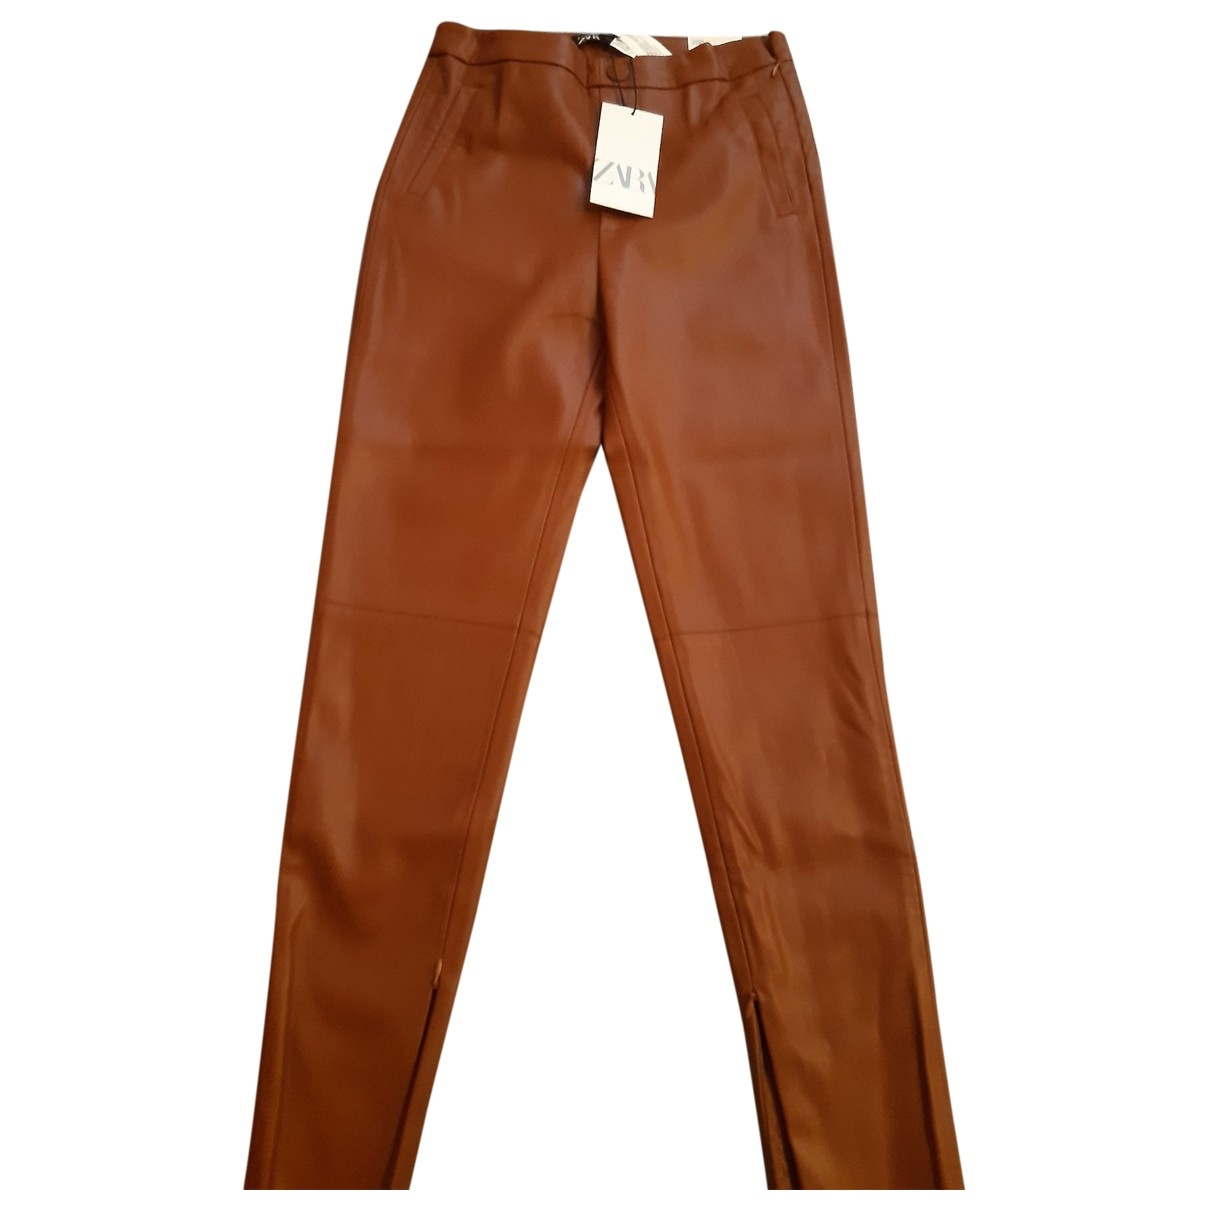 Zara \N Brown Leather Trousers for Women 32 FR